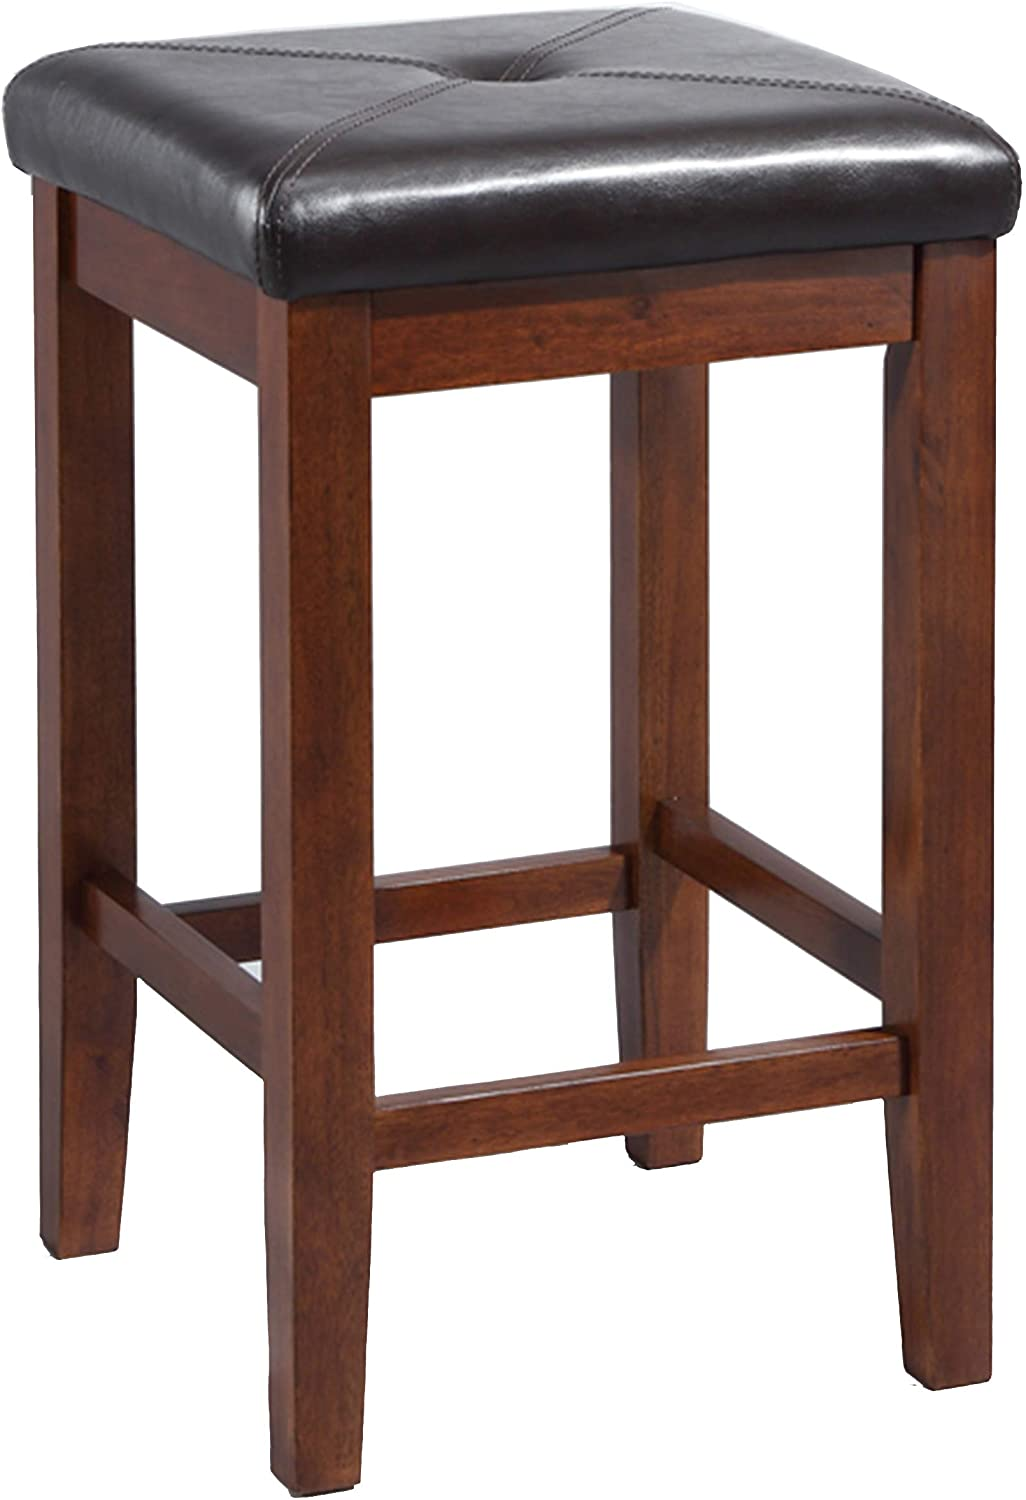 Crosley Furniture CF500524-MA Upholstered Square Seat Bar Stool (Set of 2), 24-inch, Vintage Mahogany